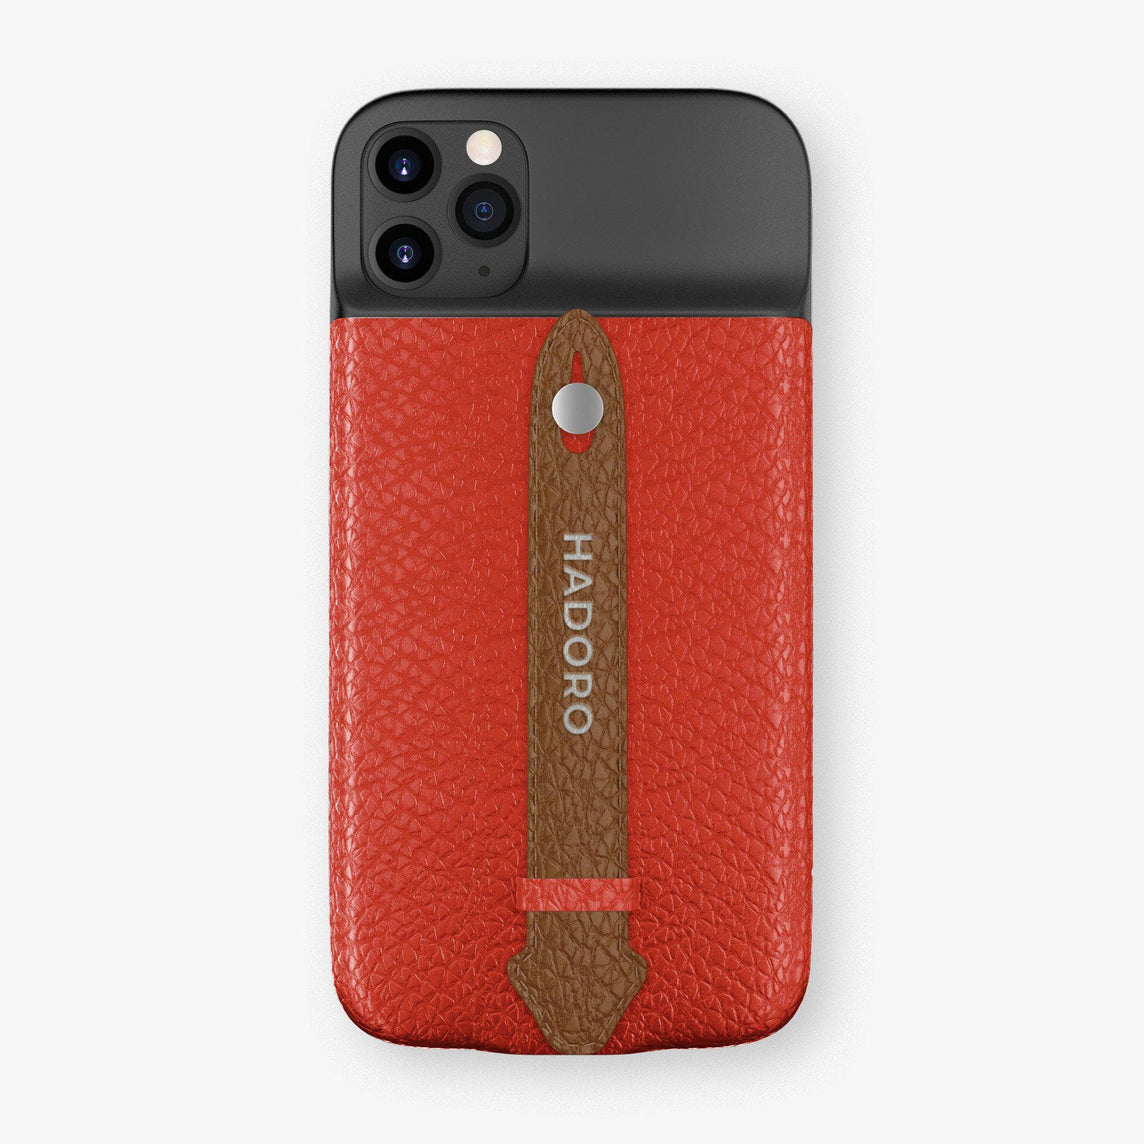 Calfskin Battery Finger Case for iPhone 11 Pro Max | Red/Brown - Stainless Steel without-personalization